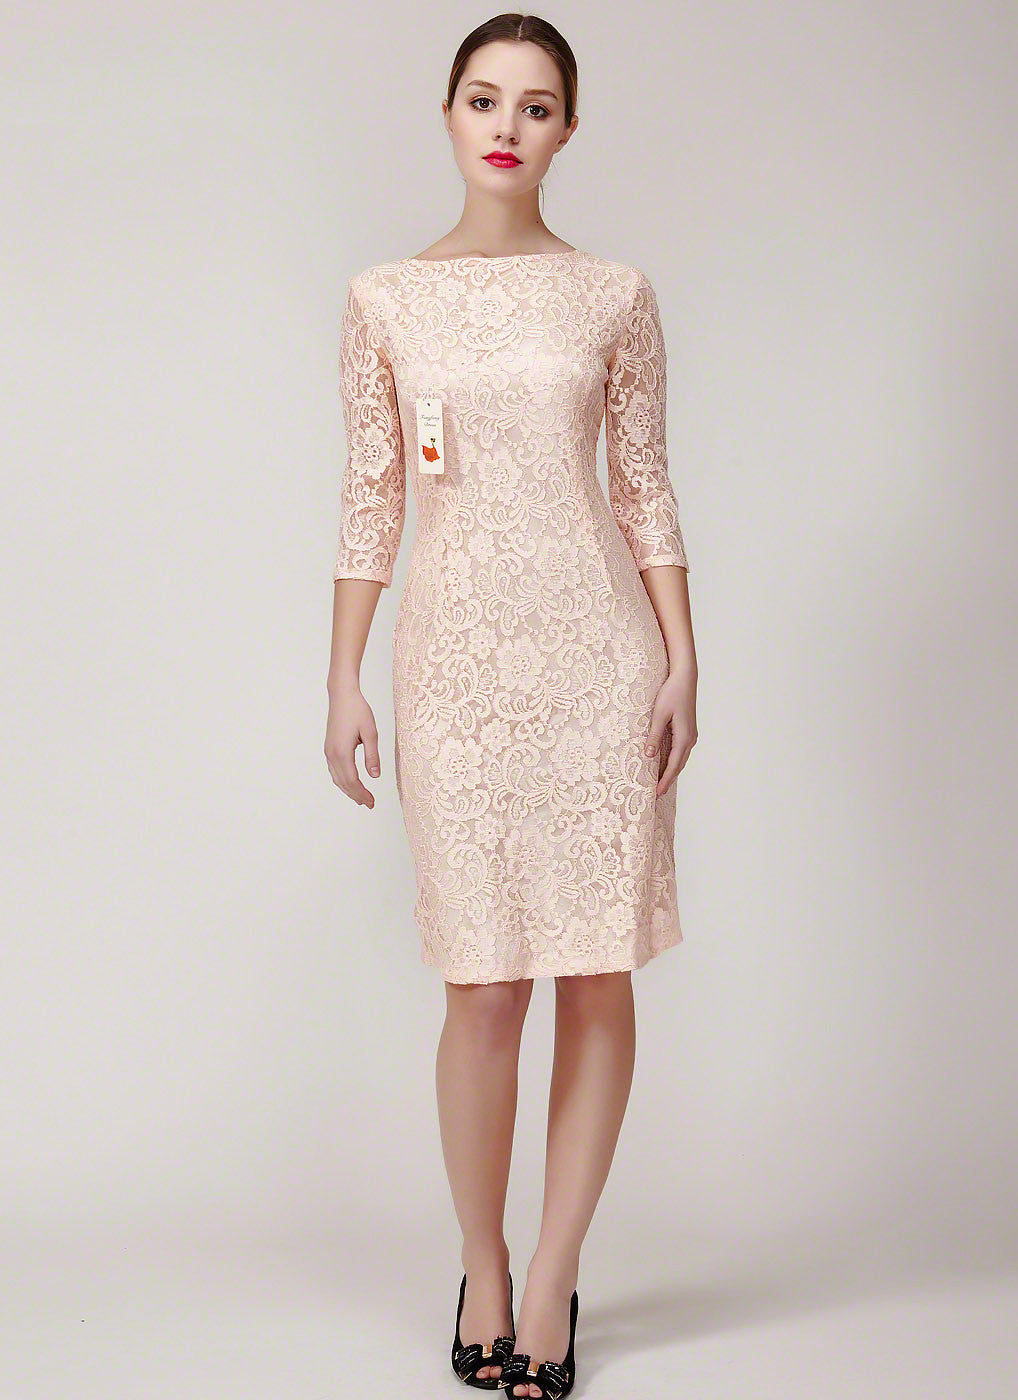 Nude Pink Dusty Rose Pink Lace Sheath Dress with Three Quarter ...